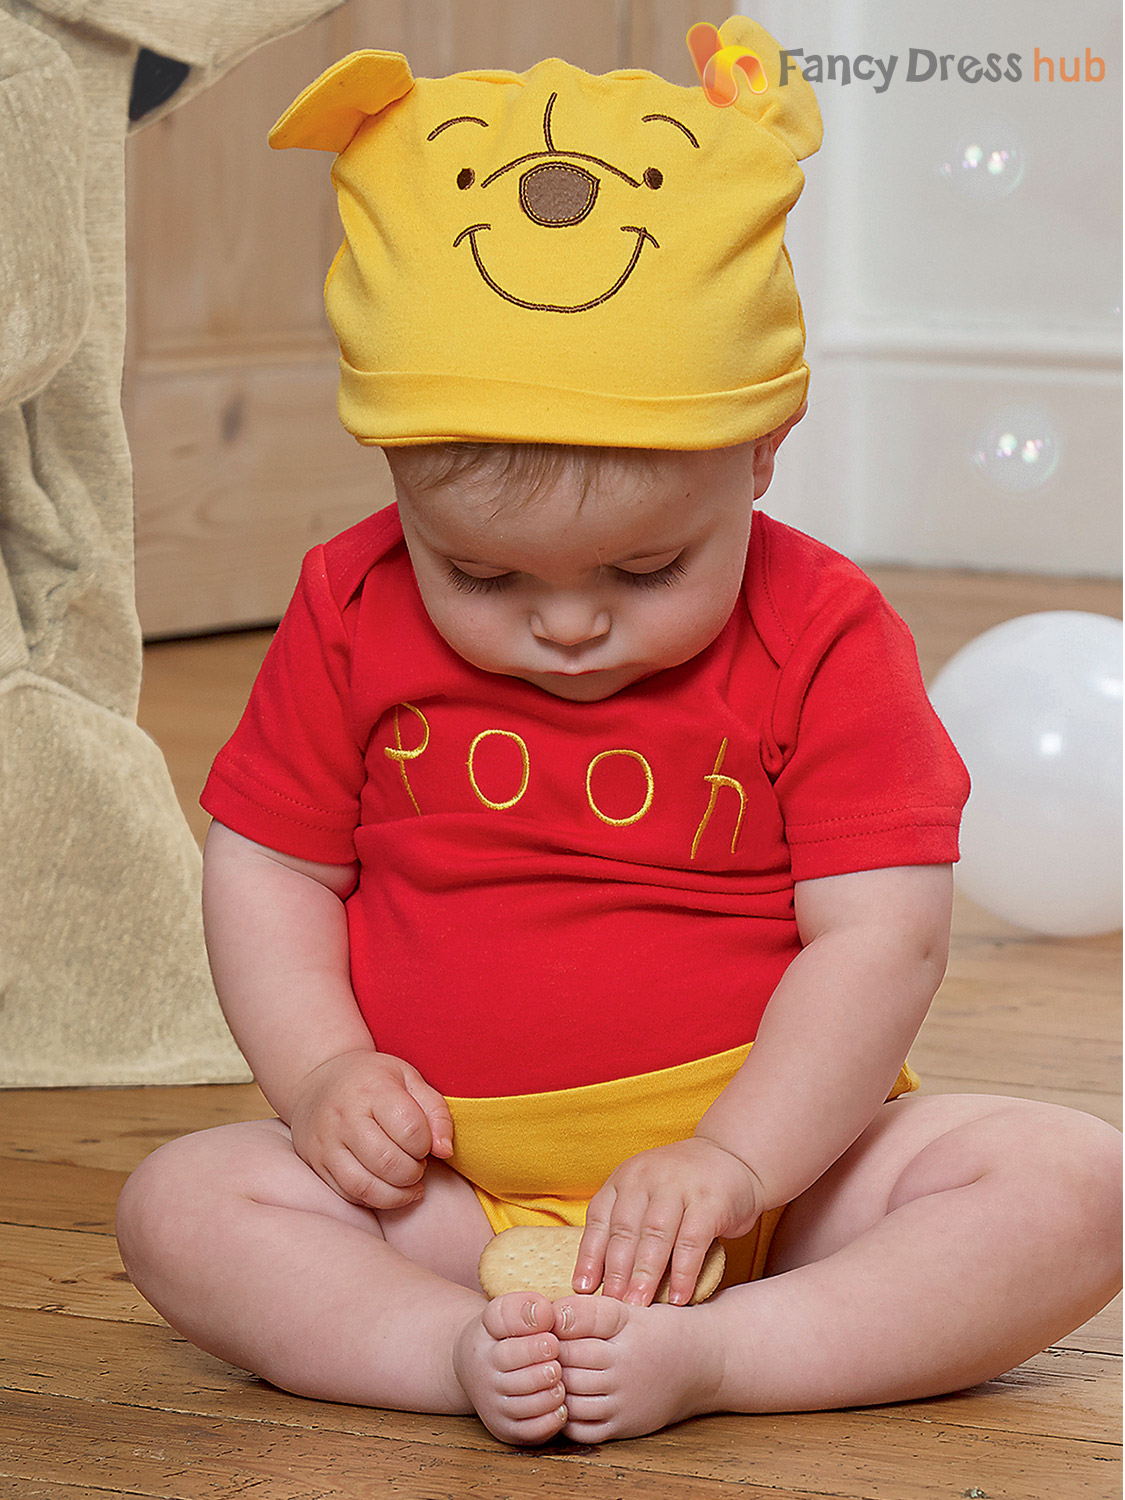 Disney-Baby-Winnie-the-Pooh-Bodysuit-Hood-Outfit-Toddler-Fancy-Dress-Costume thumbnail 10